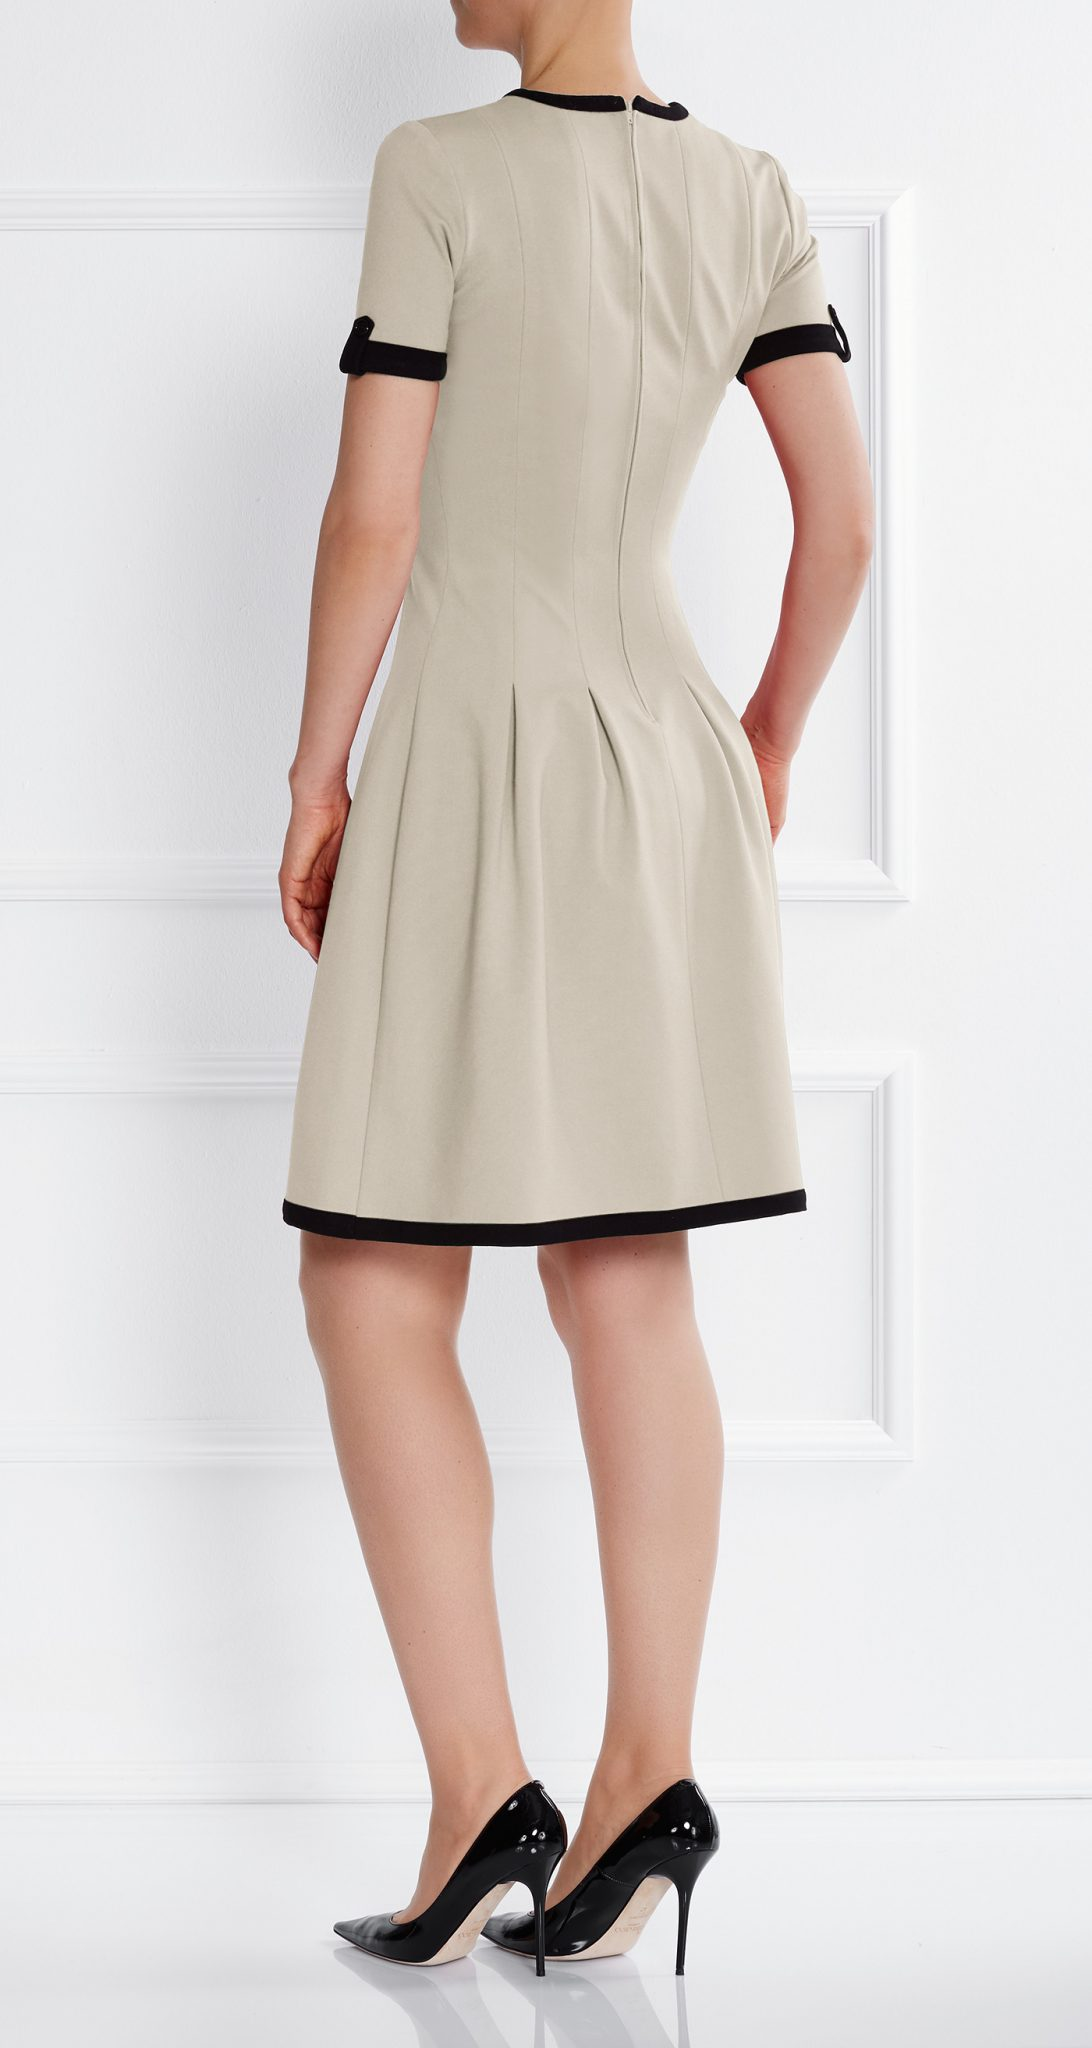 AMCO Fashion by Annett Möller | AMCO Celilia Dress | Beach Sand | Creme | Stretch Kleid mit verspielten Falten